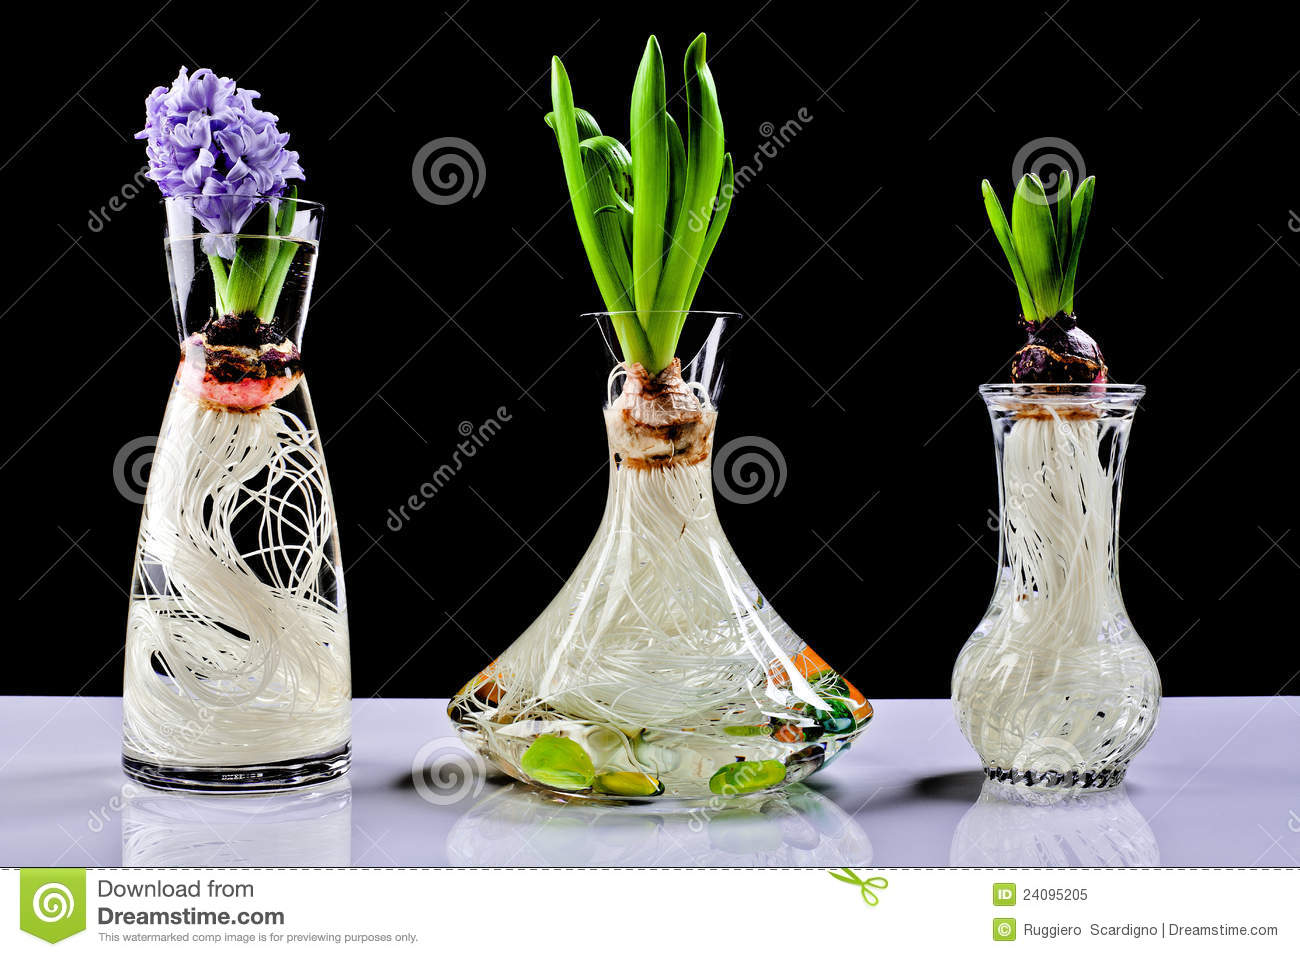 Growing Hyacinth Flower Bulb In Pot Royalty Free Stock Photo - Image: 24095205